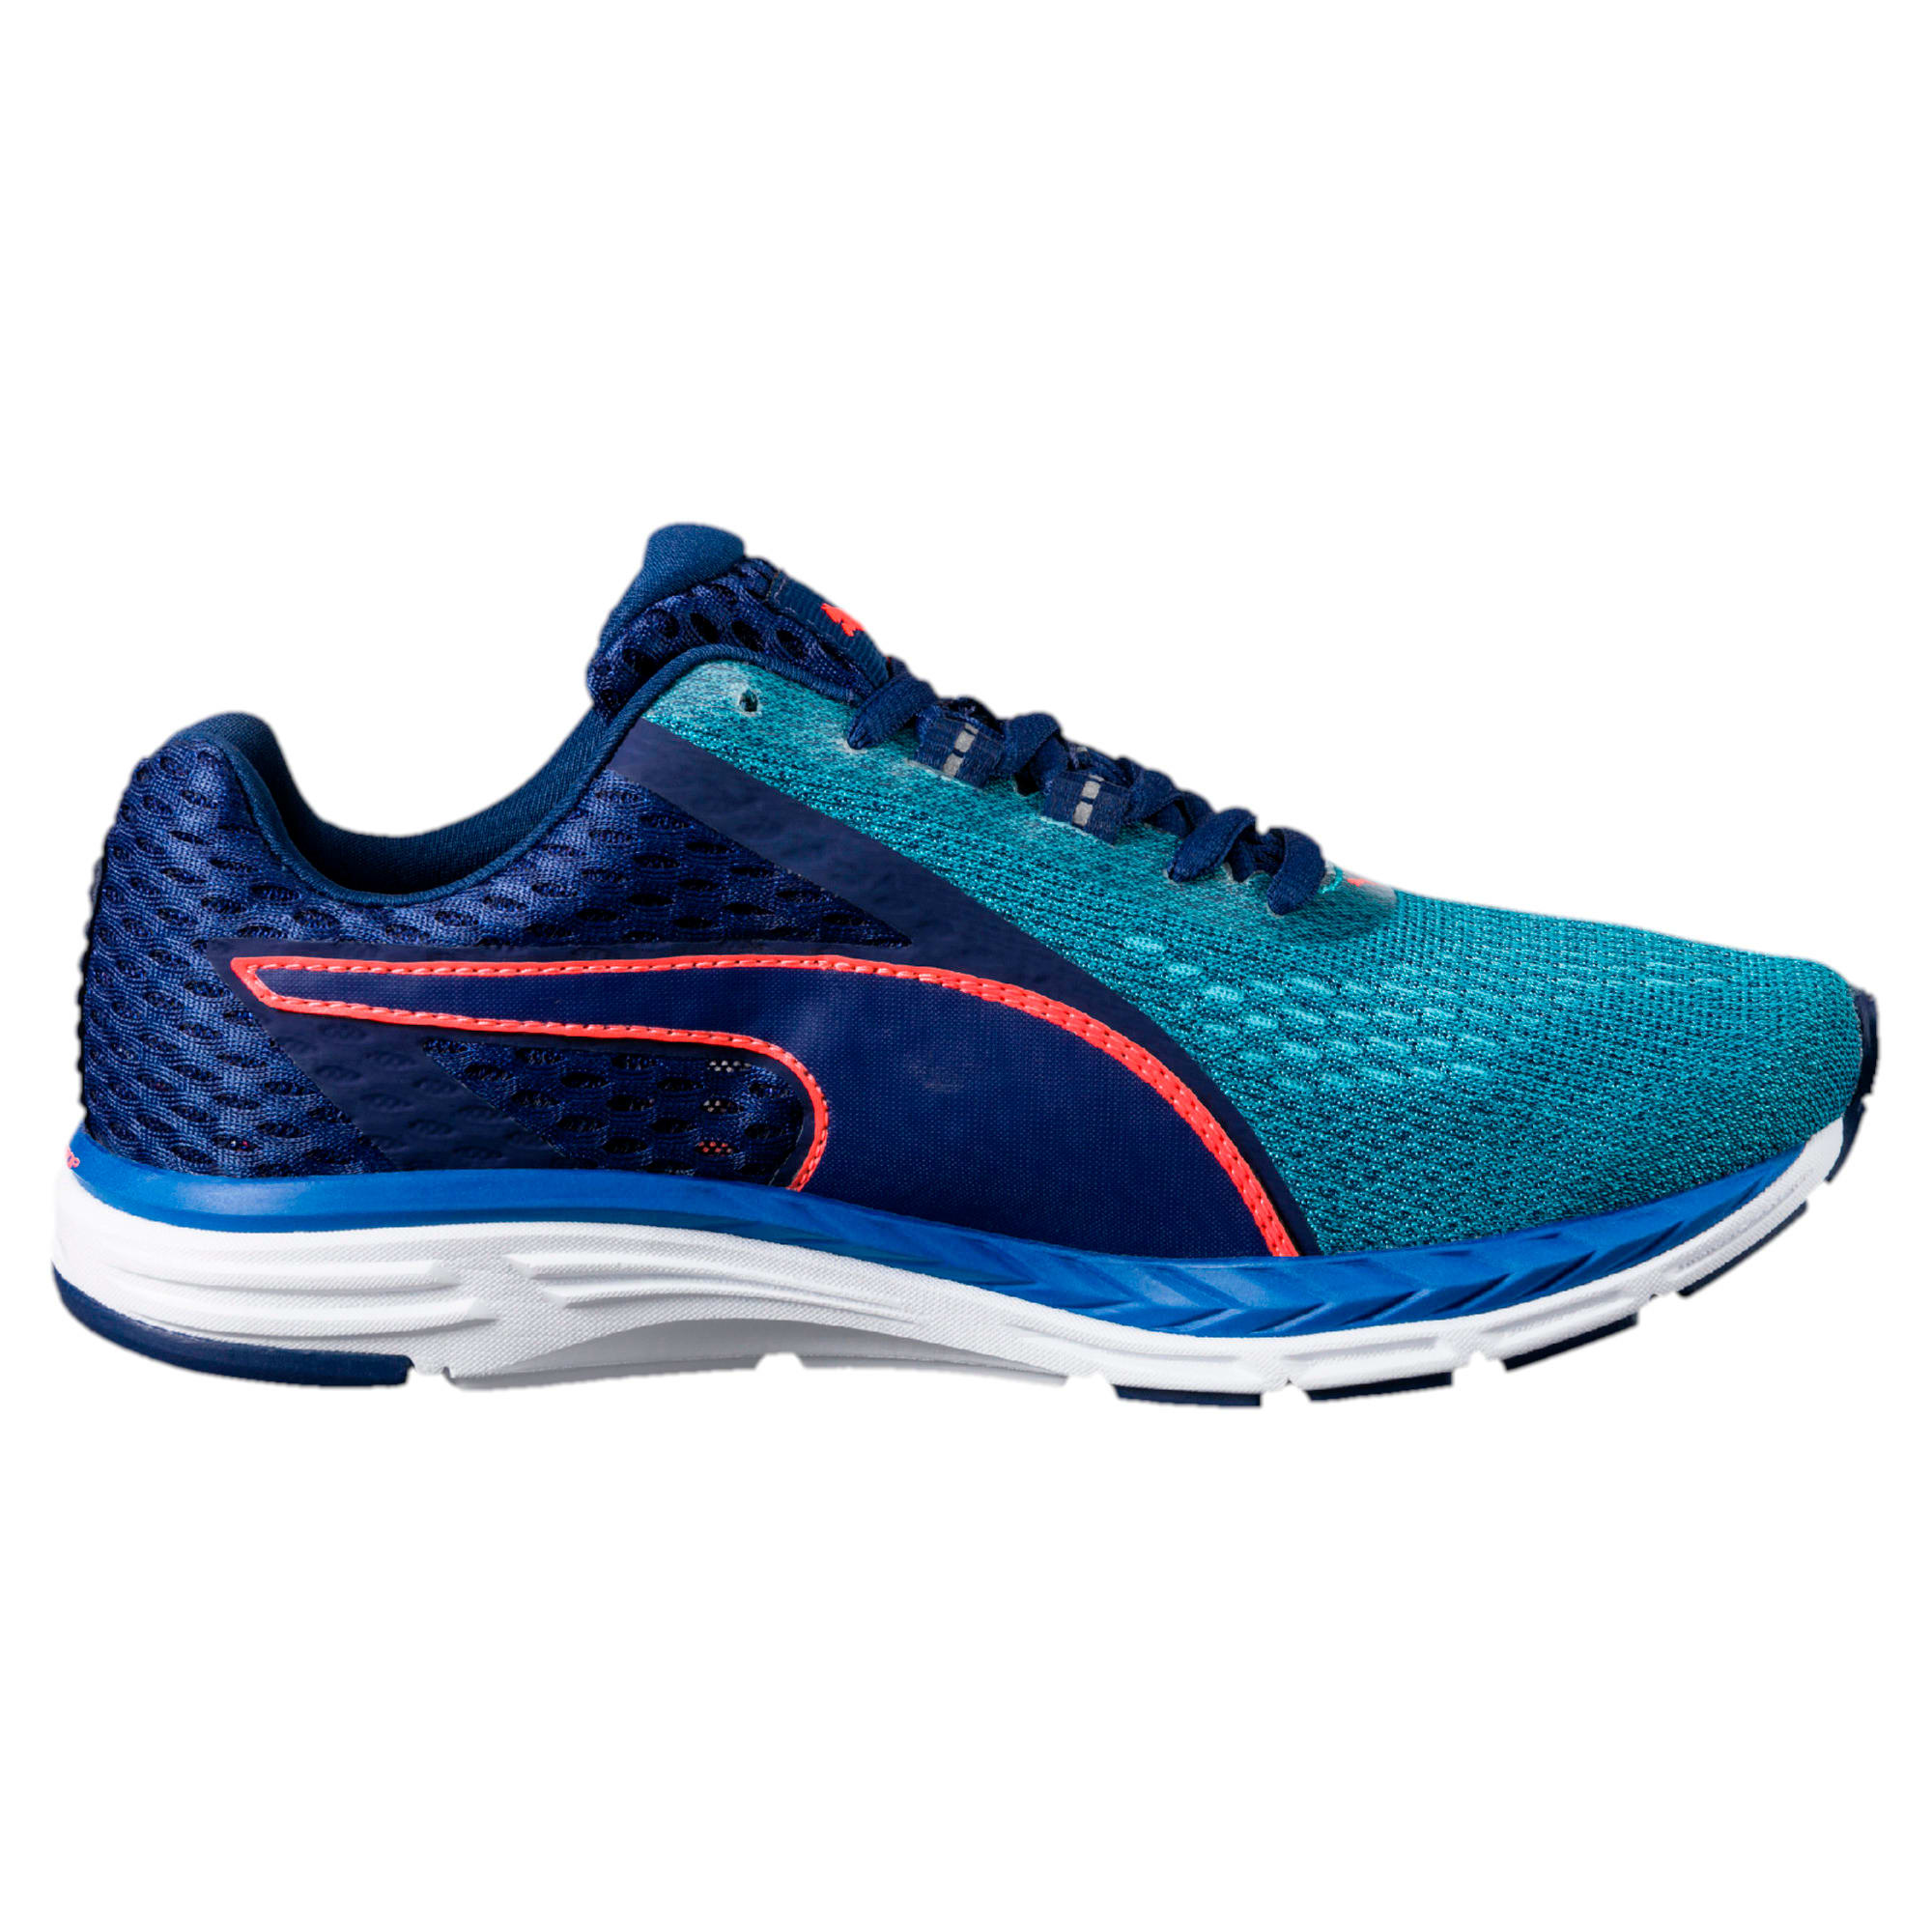 Thumbnail 4 of Speed 500 IGNITE 2 Kids' Running Shoes, Nrgy Turquoise-Blue Depths, medium-IND